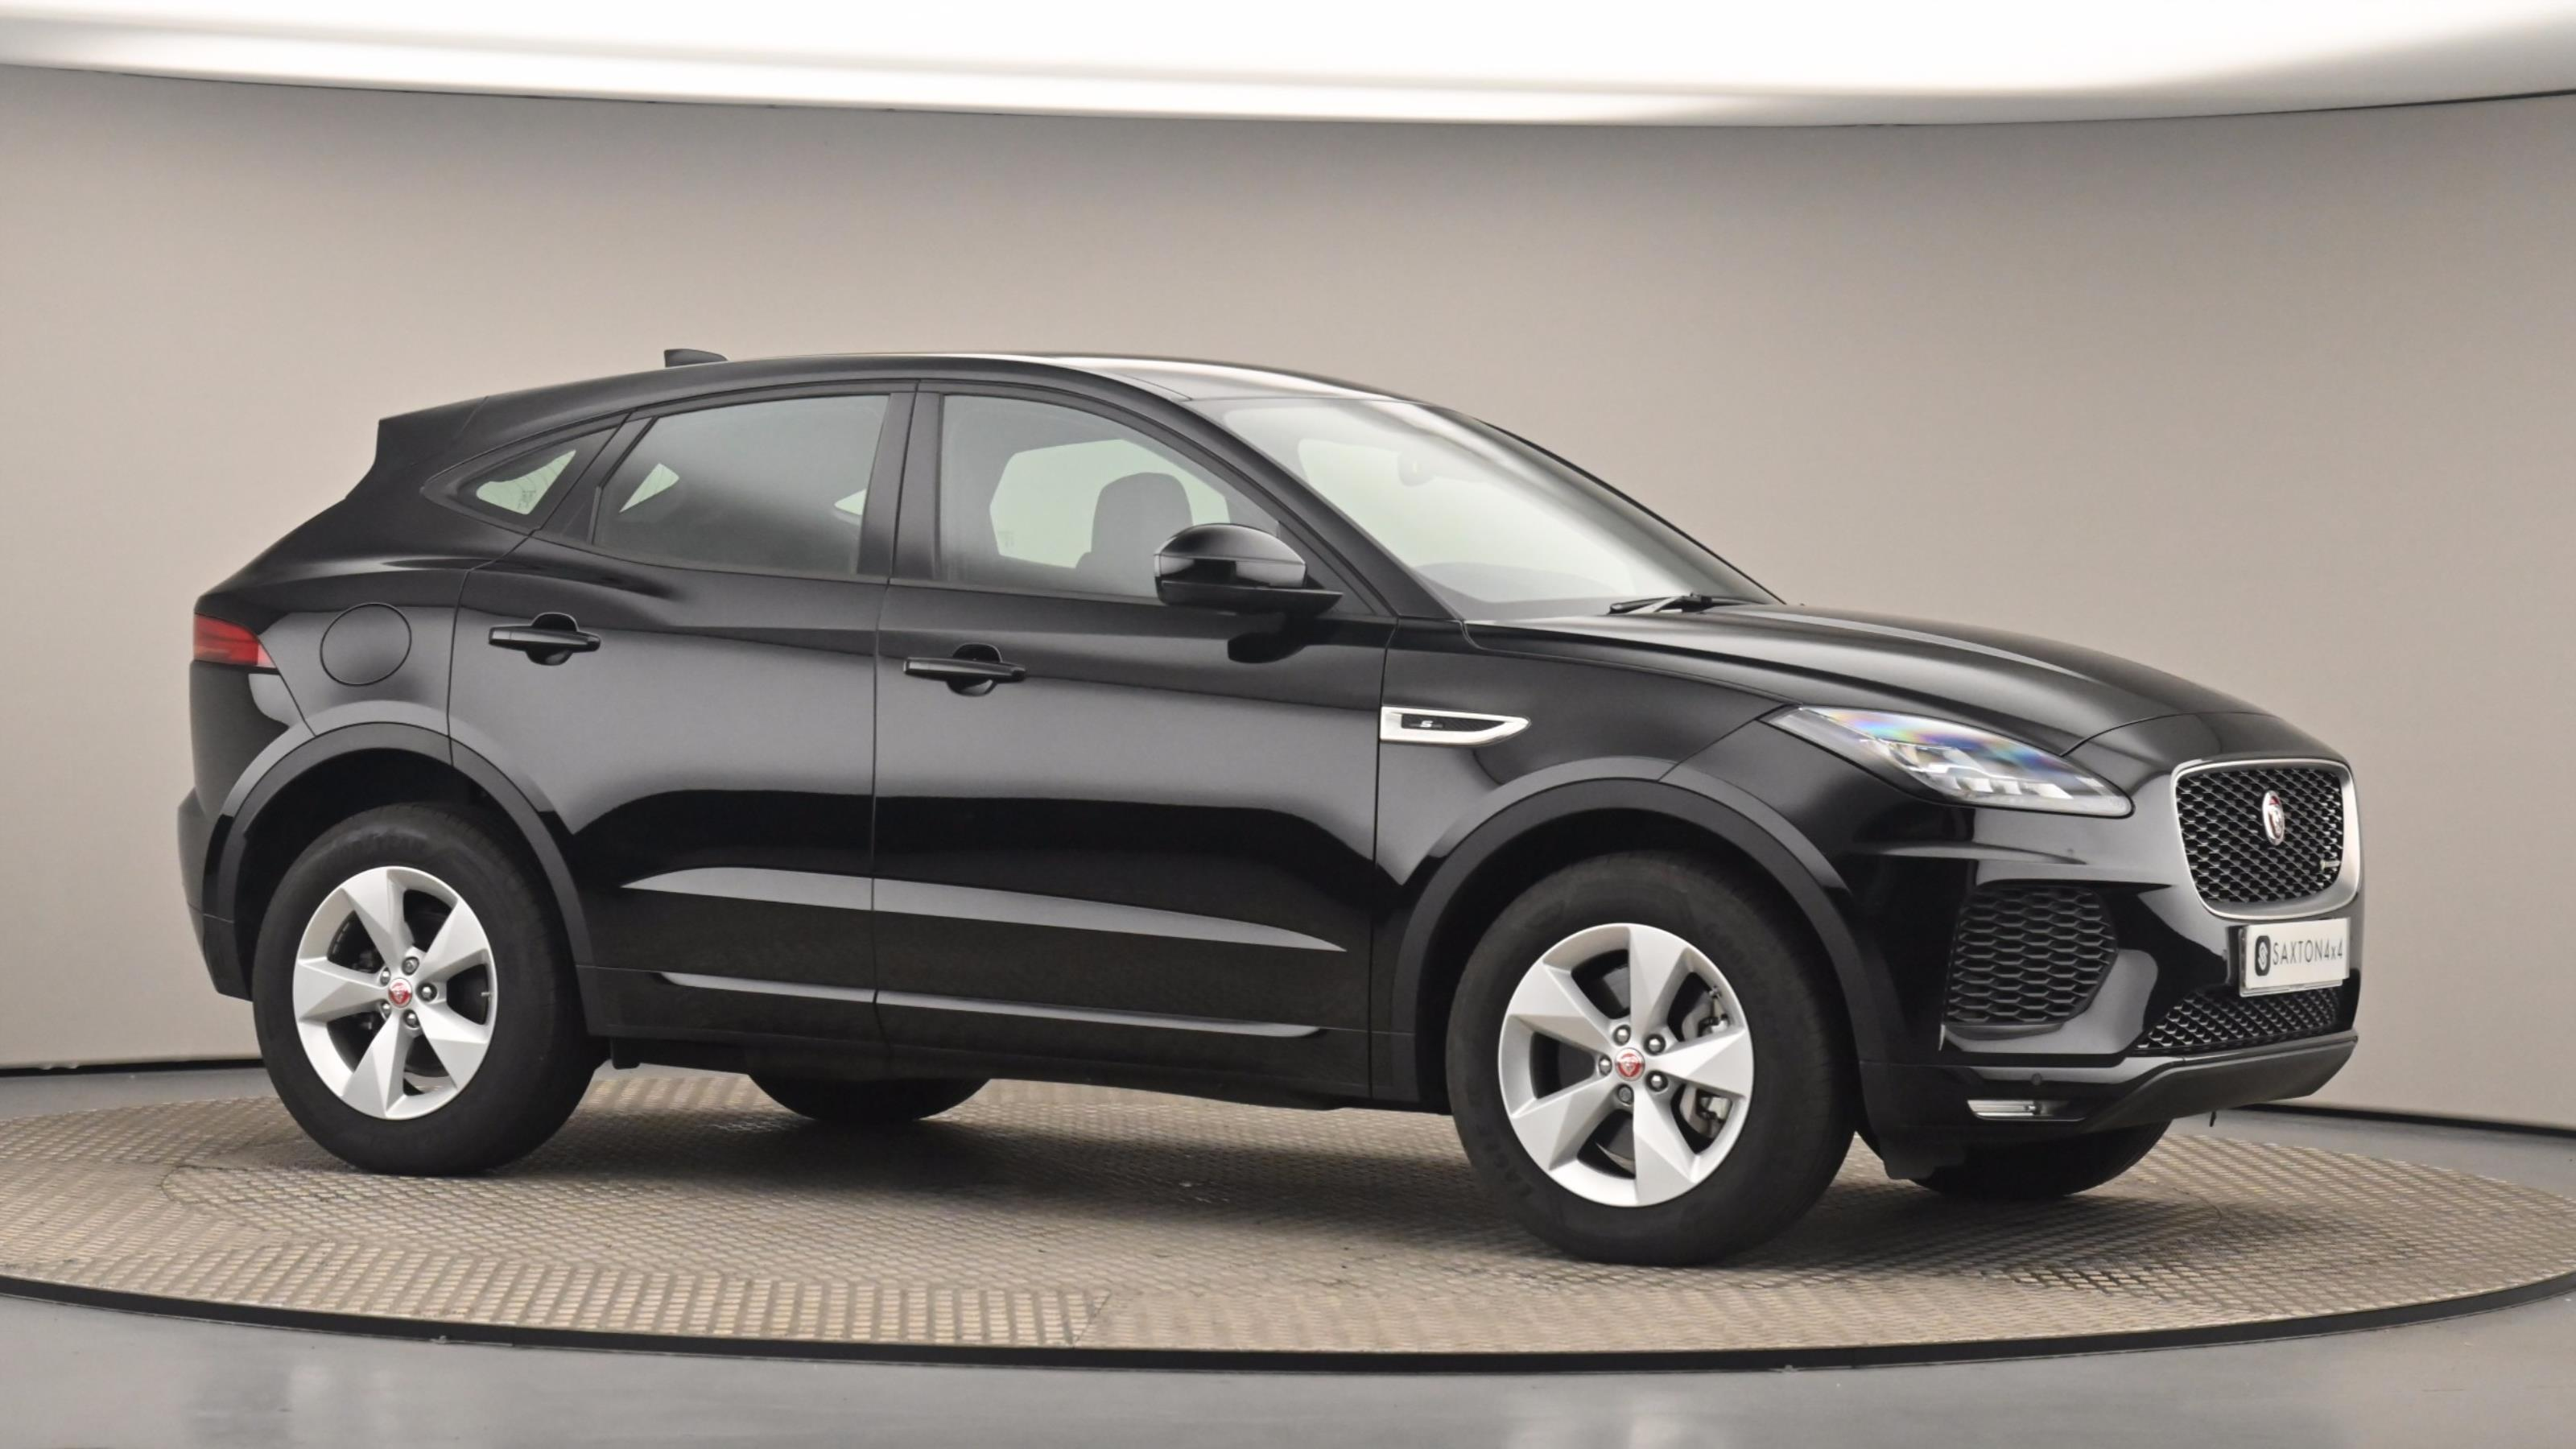 Used 2018 Jaguar E-PACE 2.0 R-Dynamic S 5dr Auto Black at Saxton4x4